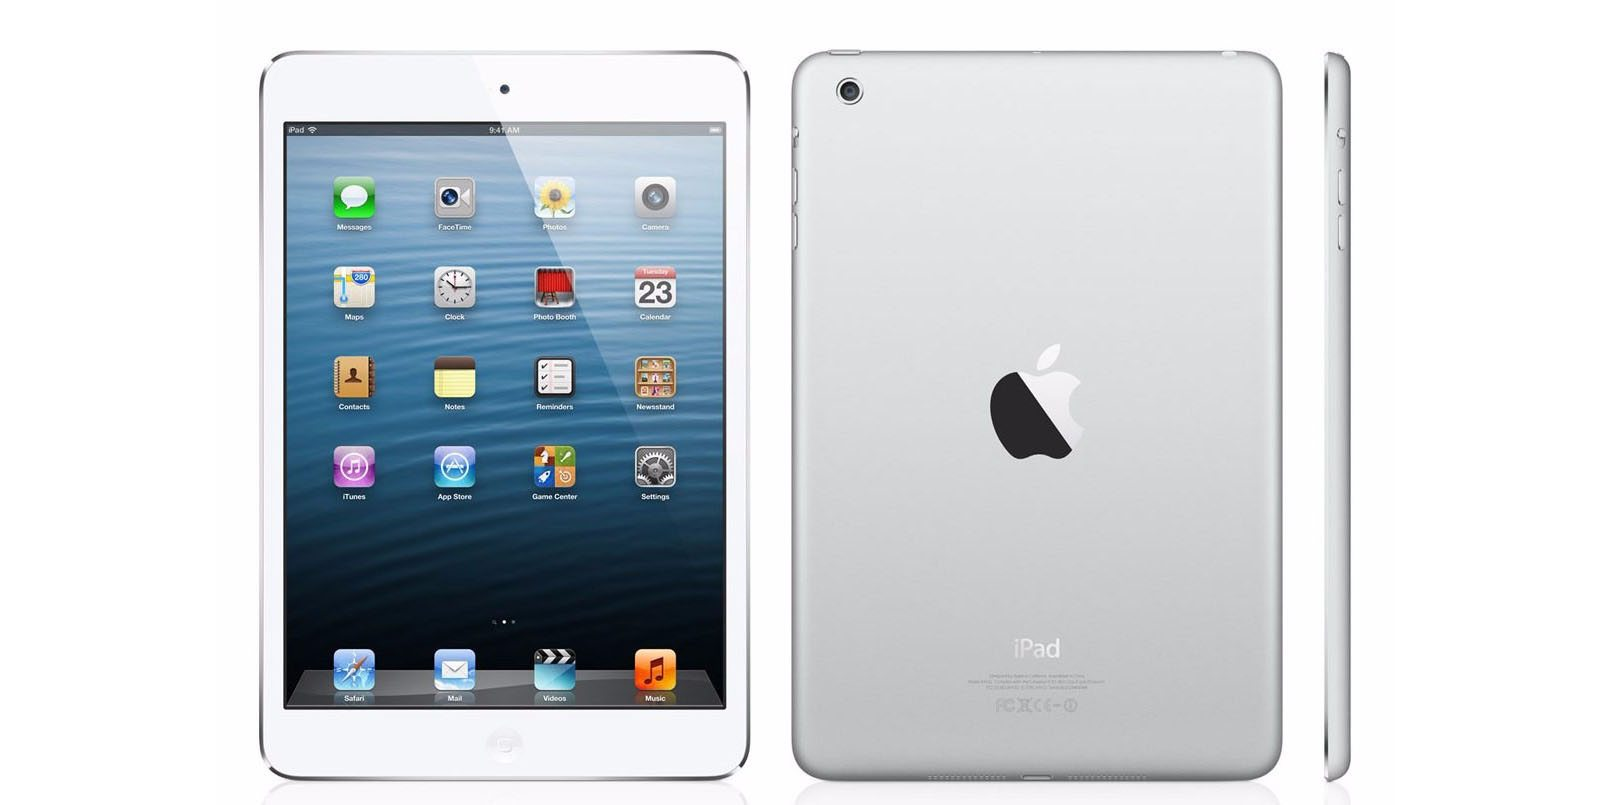 iPad Air 2: The standalone winner at under $1,000